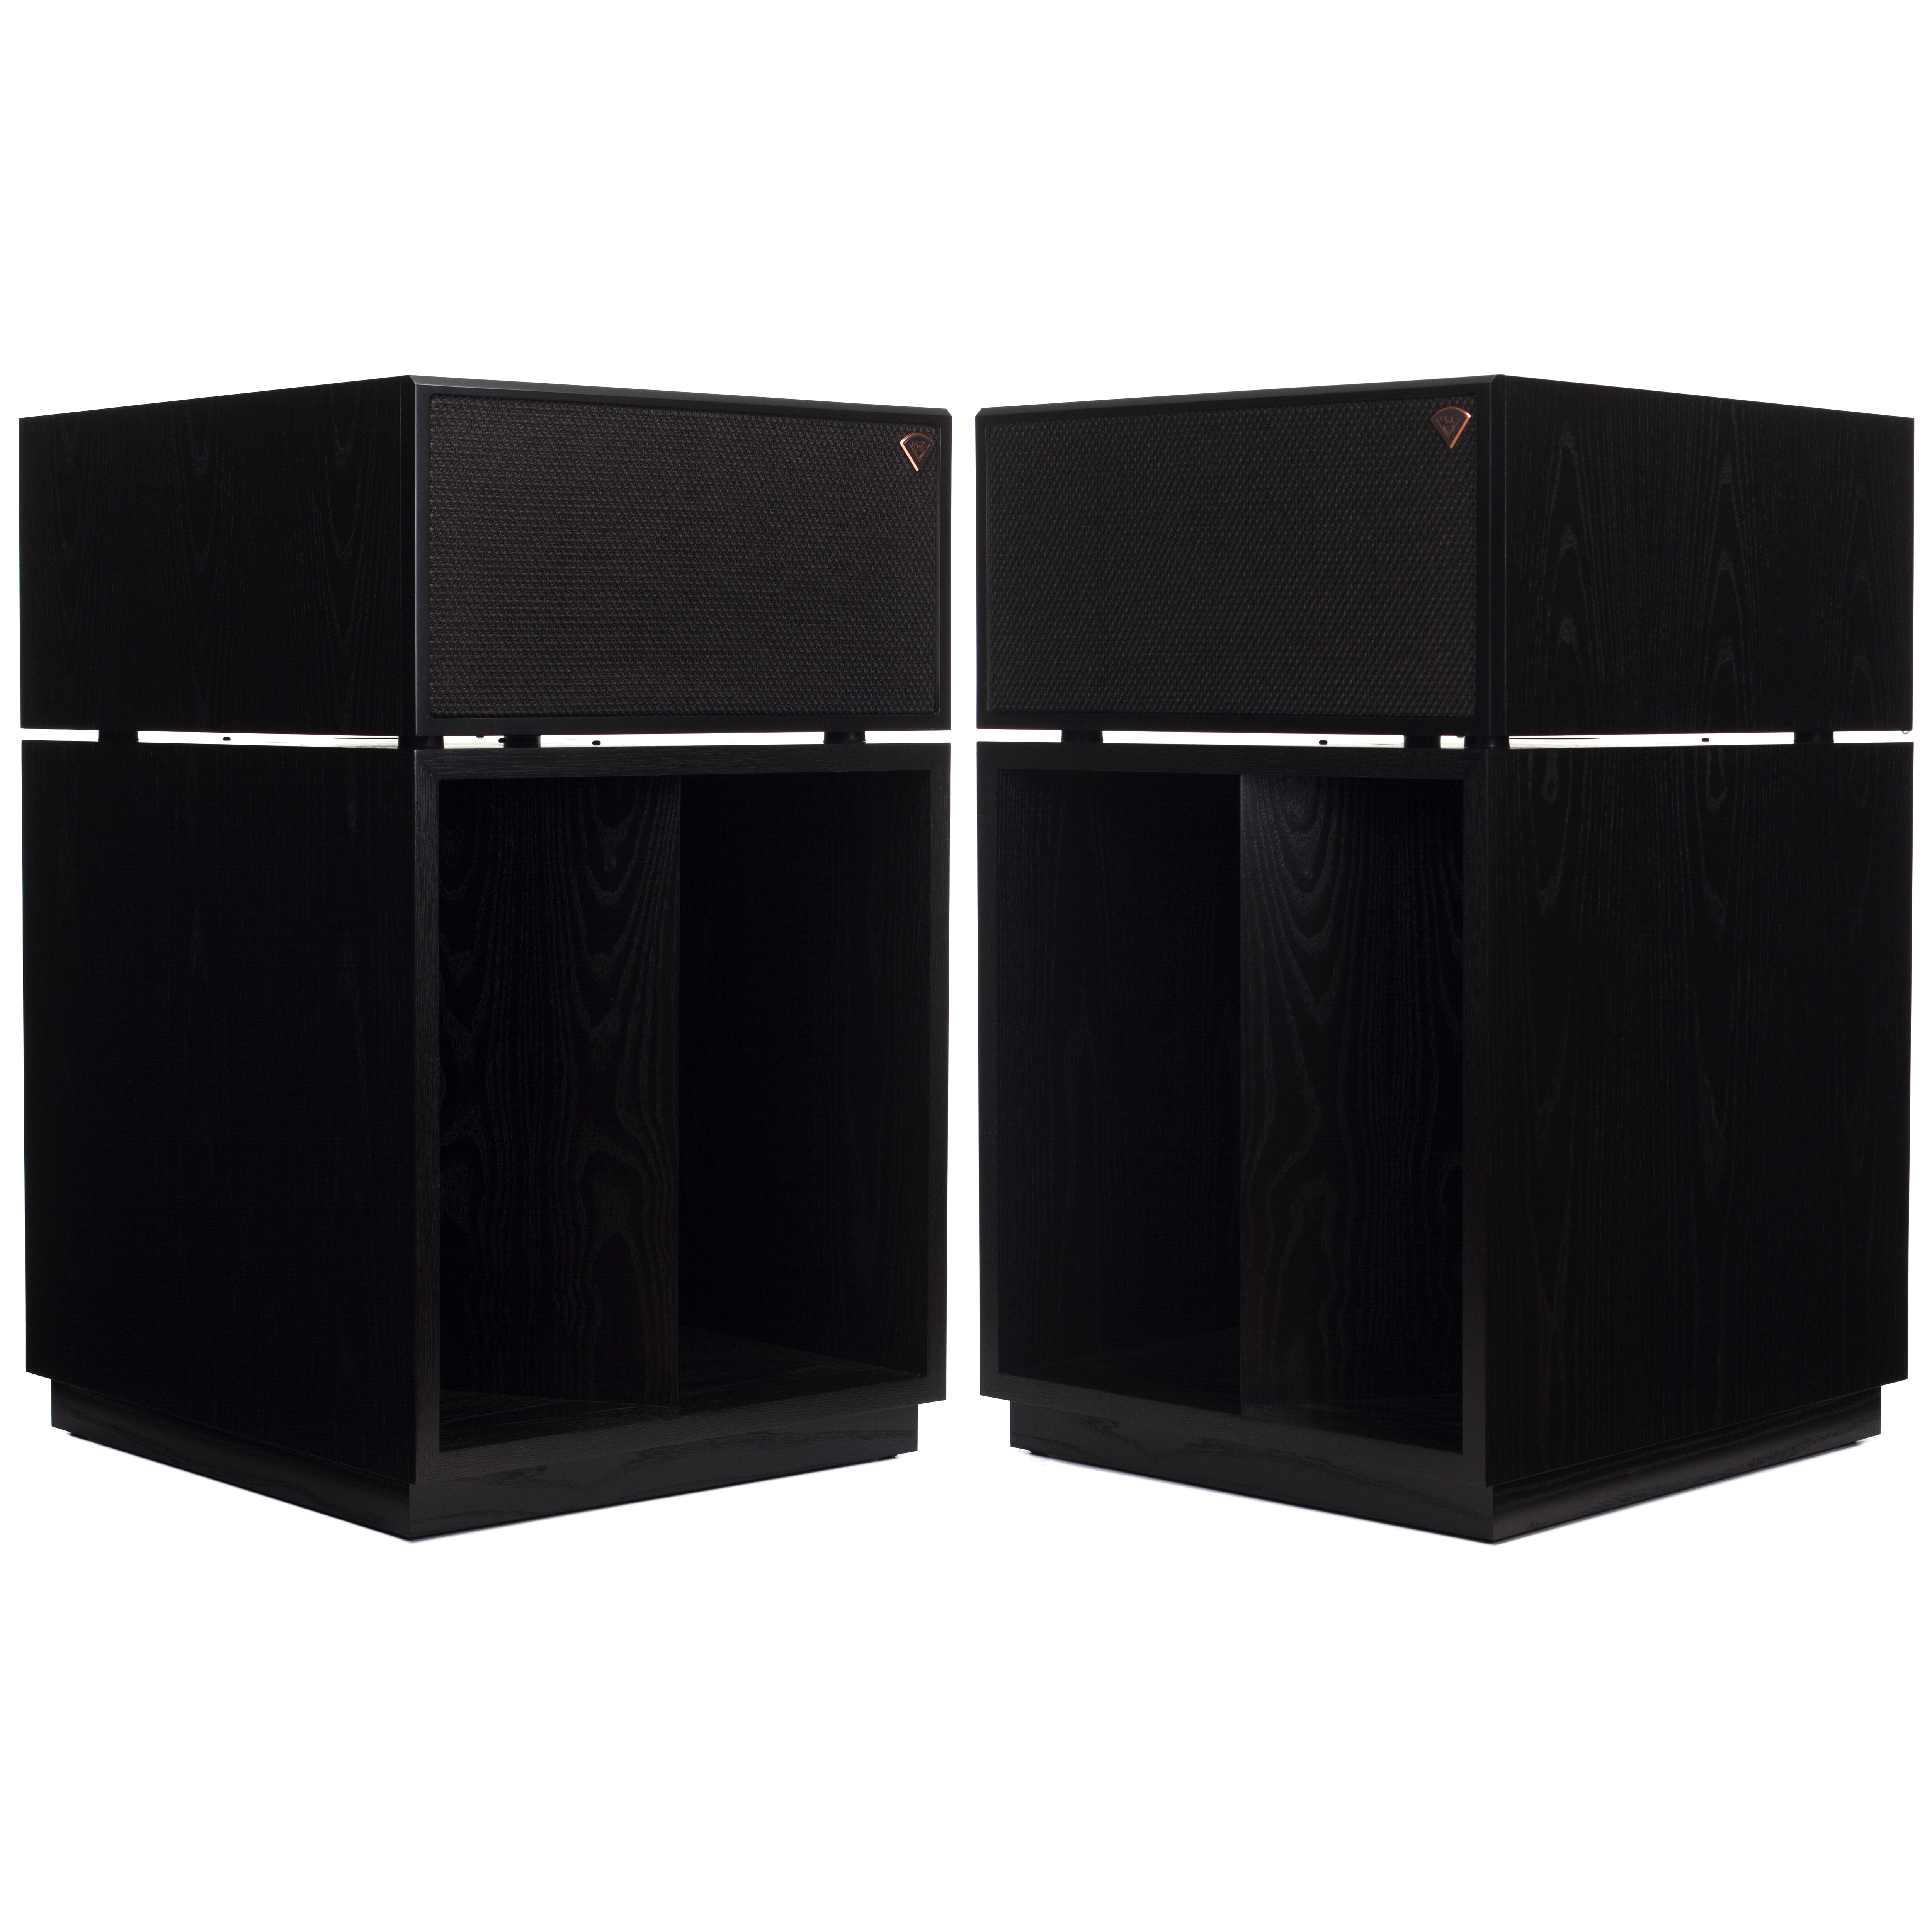 La Scala II Floorstanding Speakers | Klipsch